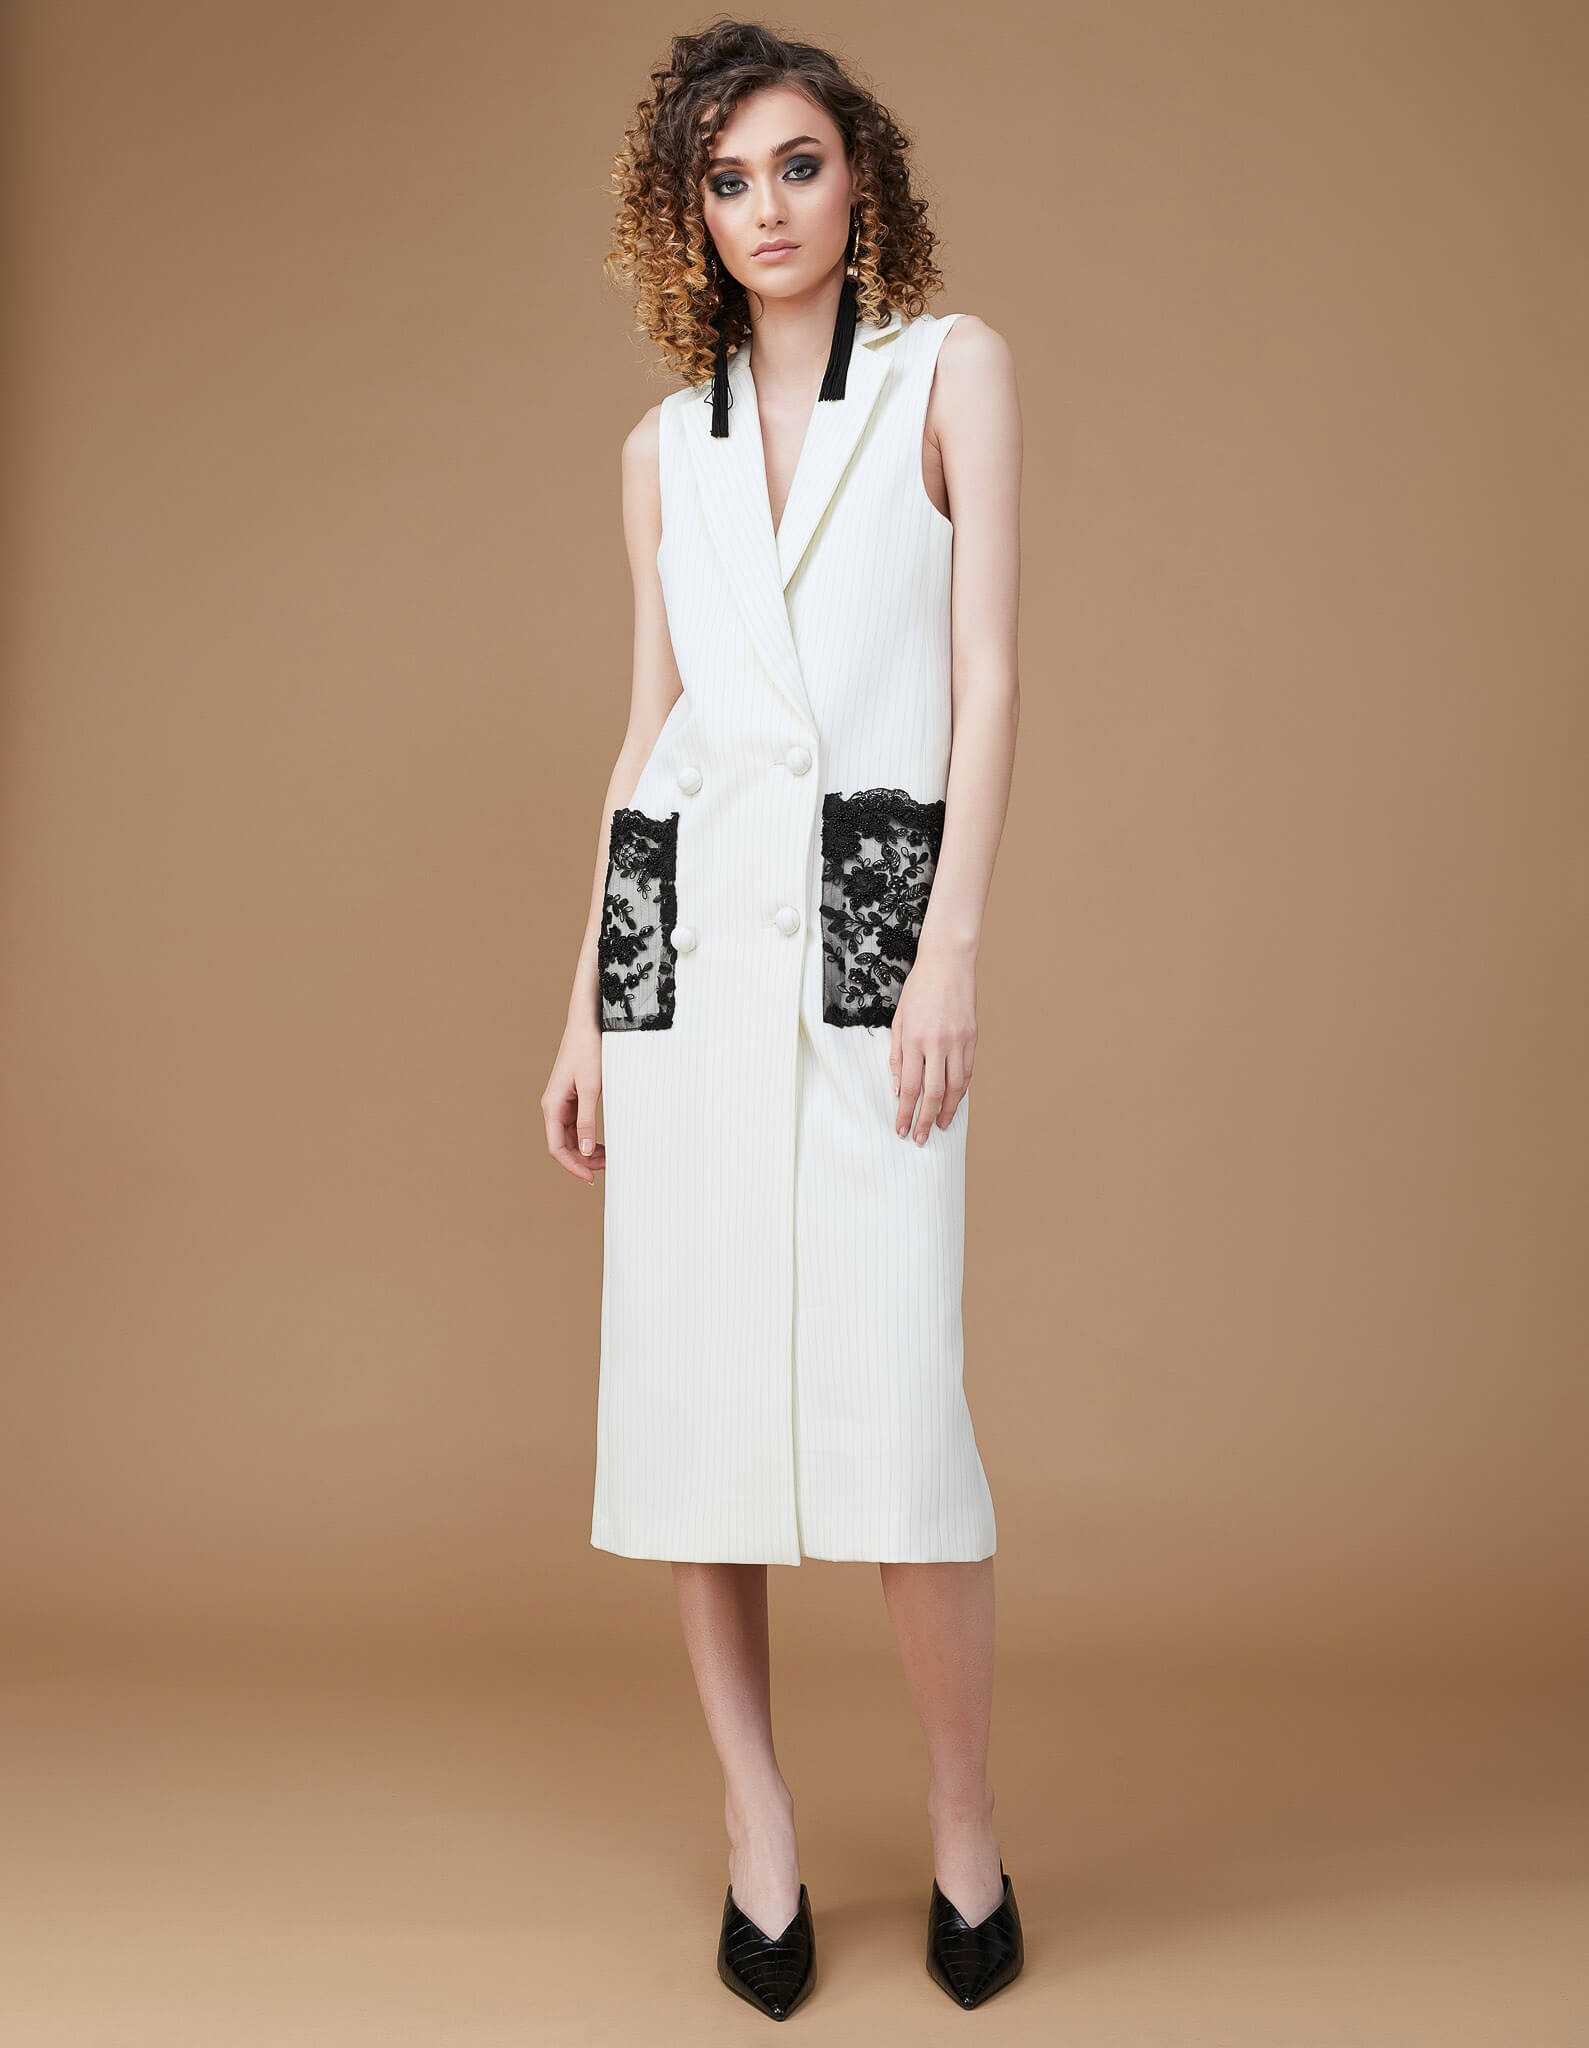 EVERYDAY Embroidered Ivory Dress-Vest